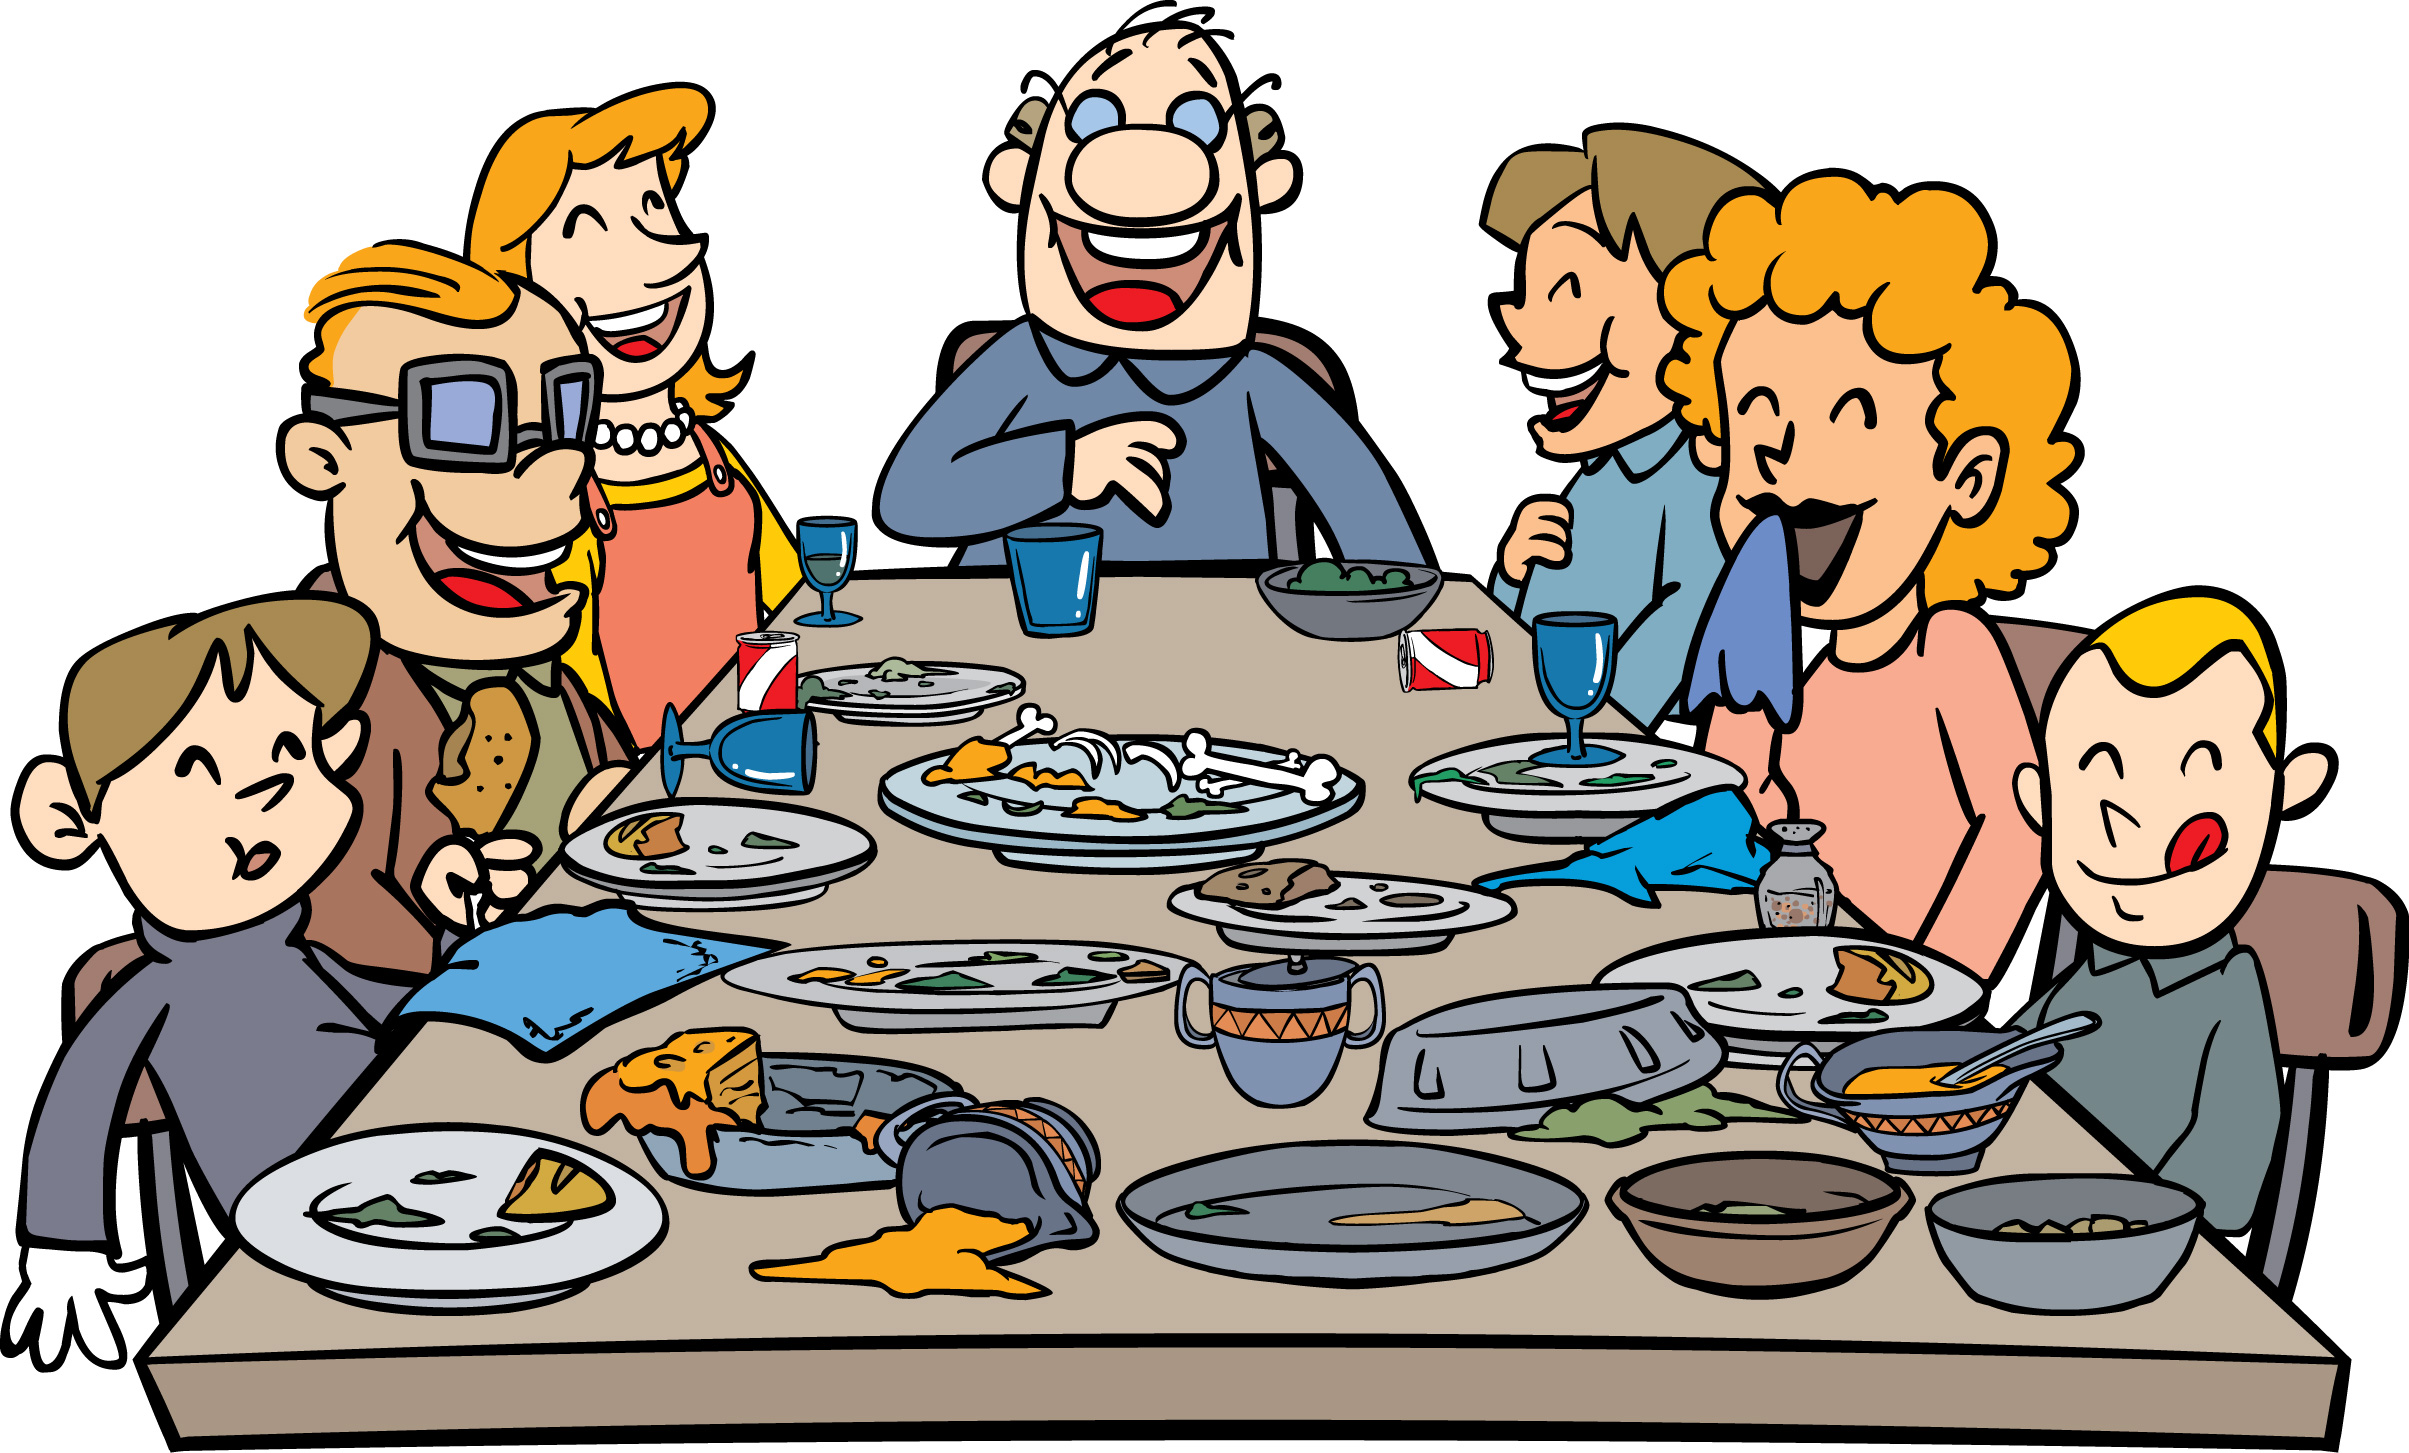 thanksgiving-family-dinner-clip-art-Y7m5S6-clipart.jpg